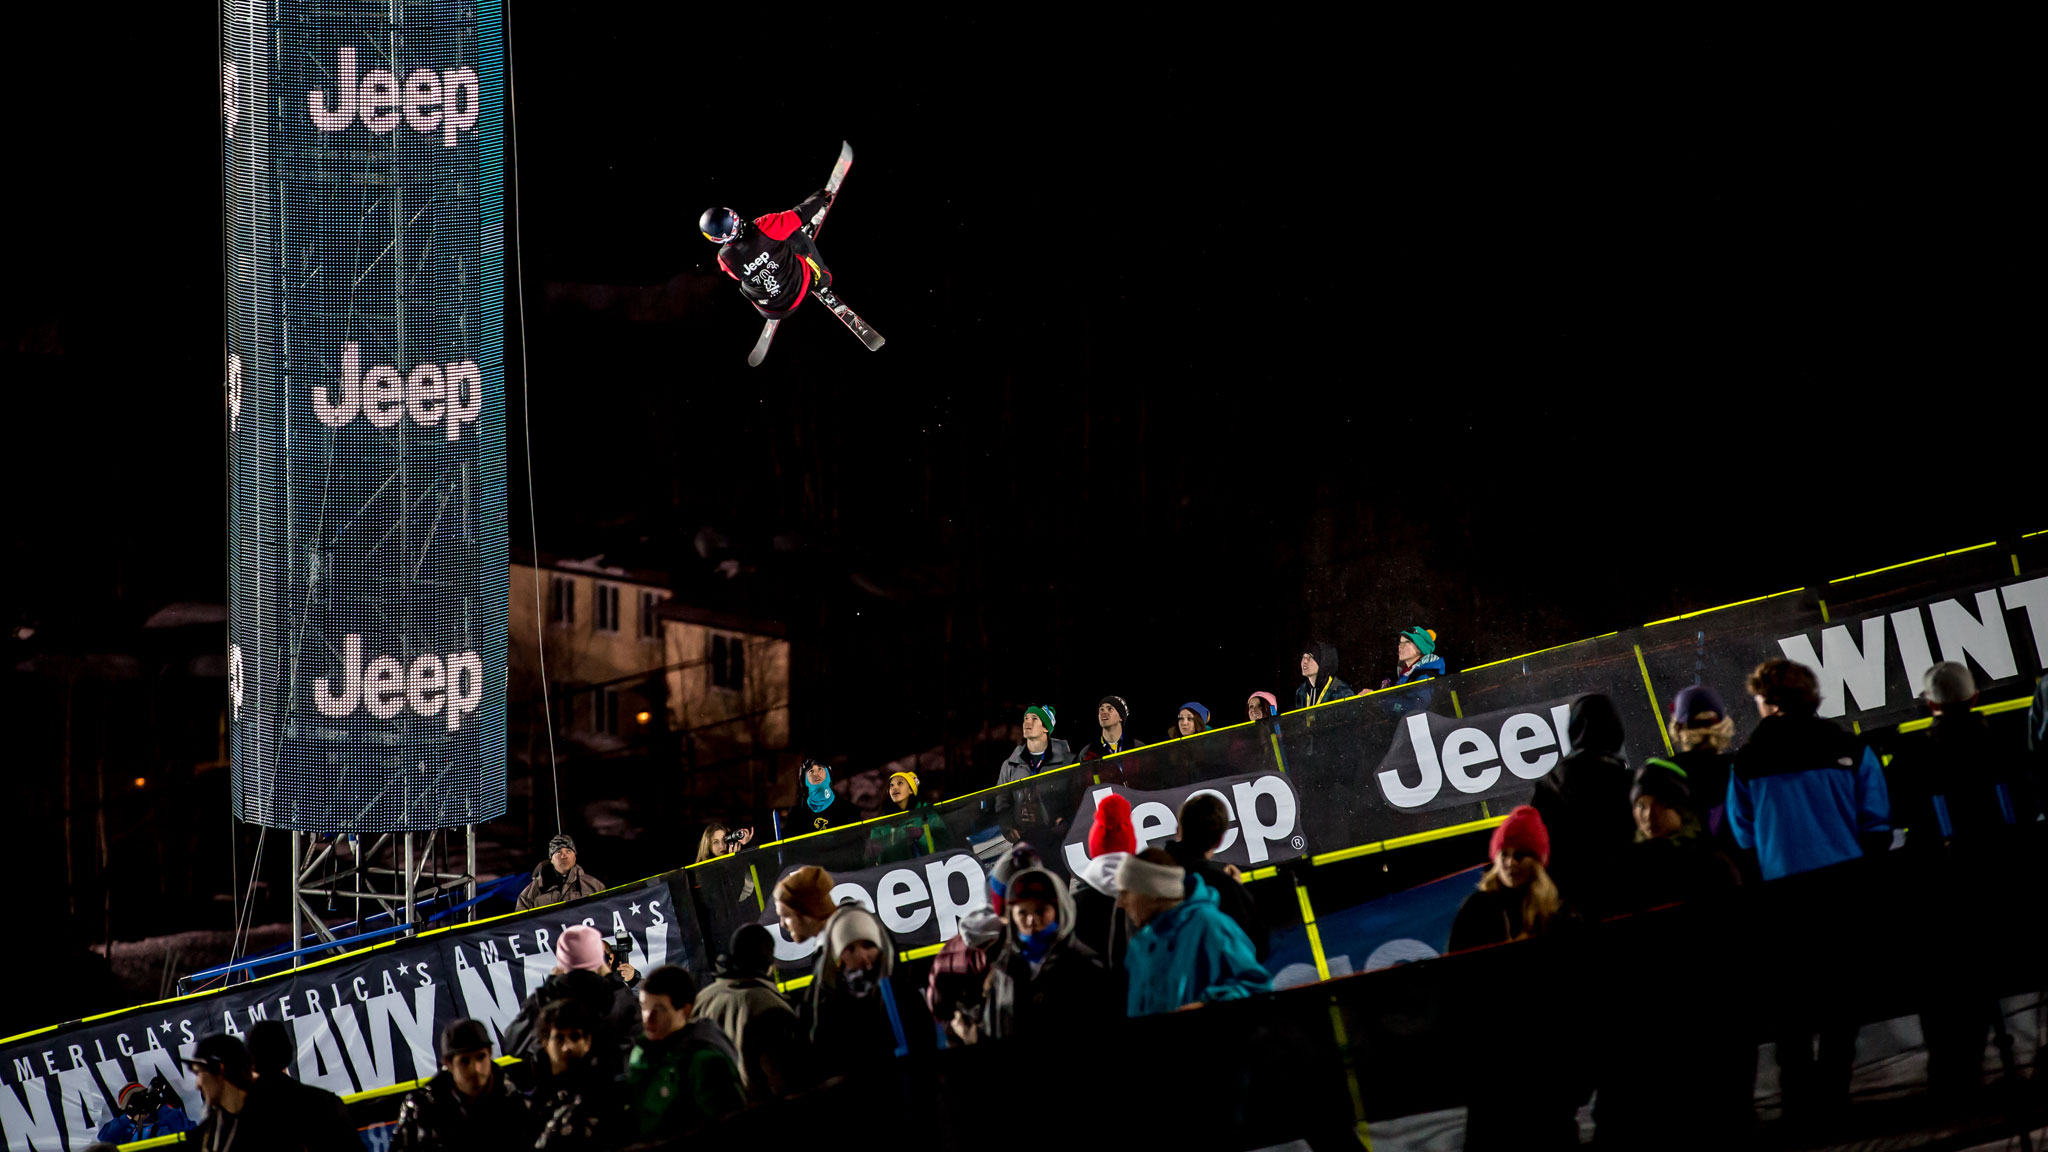 Simon Dumont has competed in 11 years of X Games. He's now taking a step back from halfpipe competition.